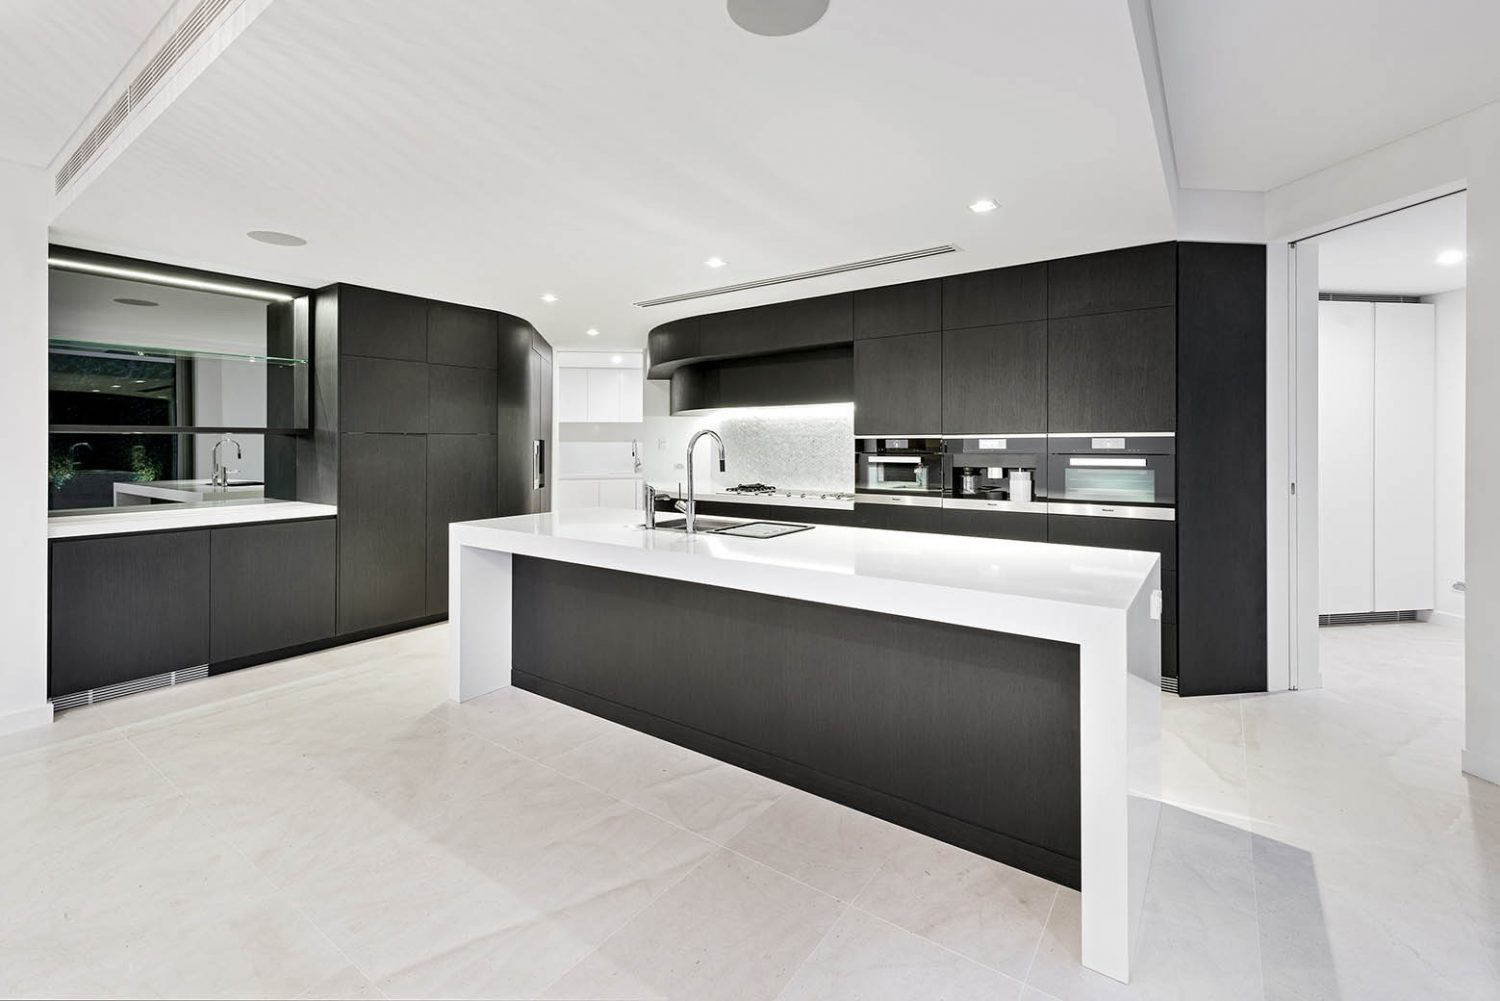 Dalkeith Residence by Hillam Architects